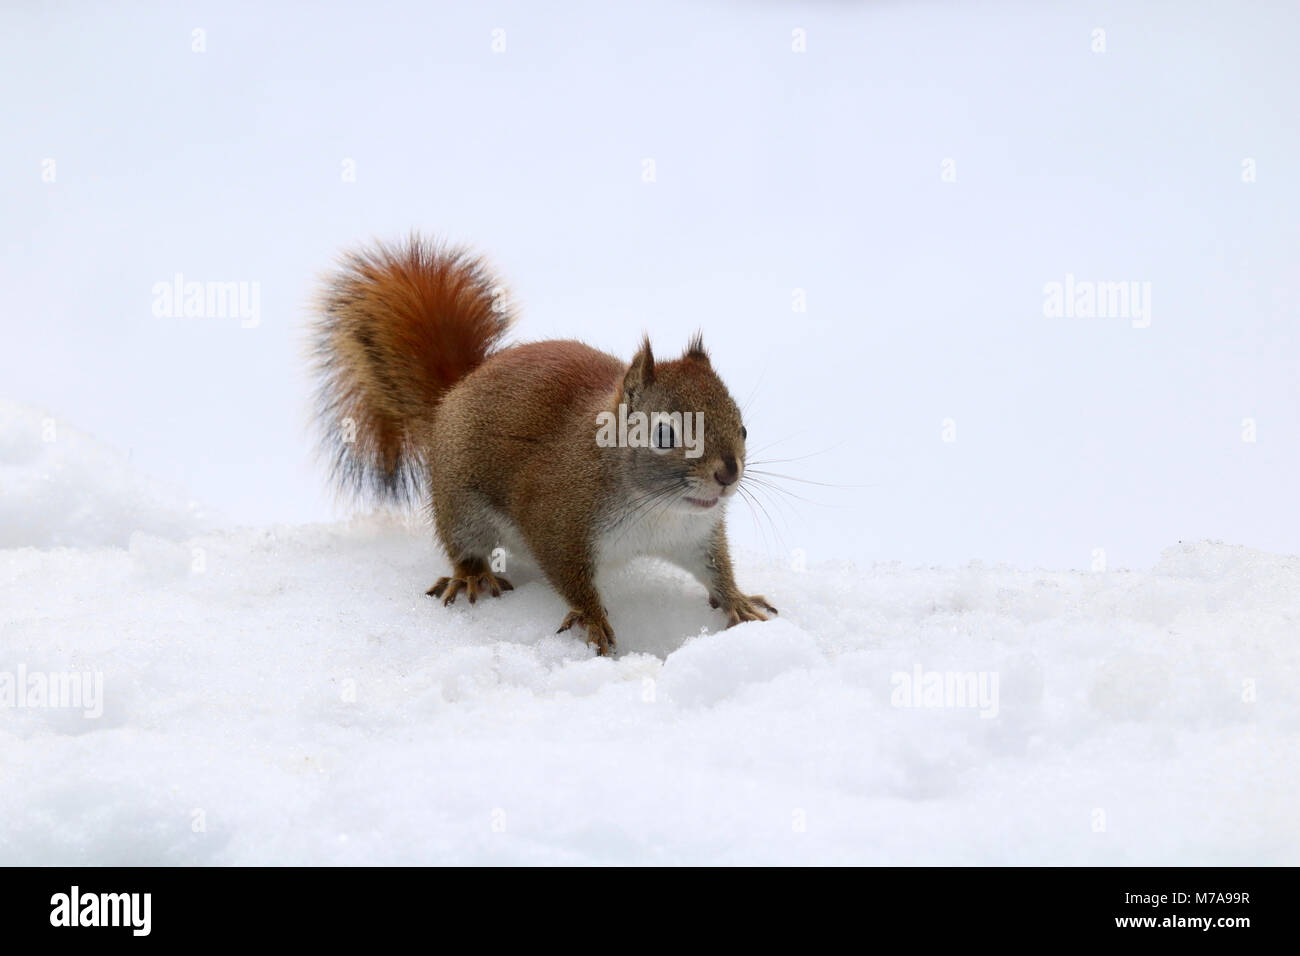 A little American Red Squirrel (Tamiasciurus hudsonicus) searching for food on a snowy day. - Stock Image